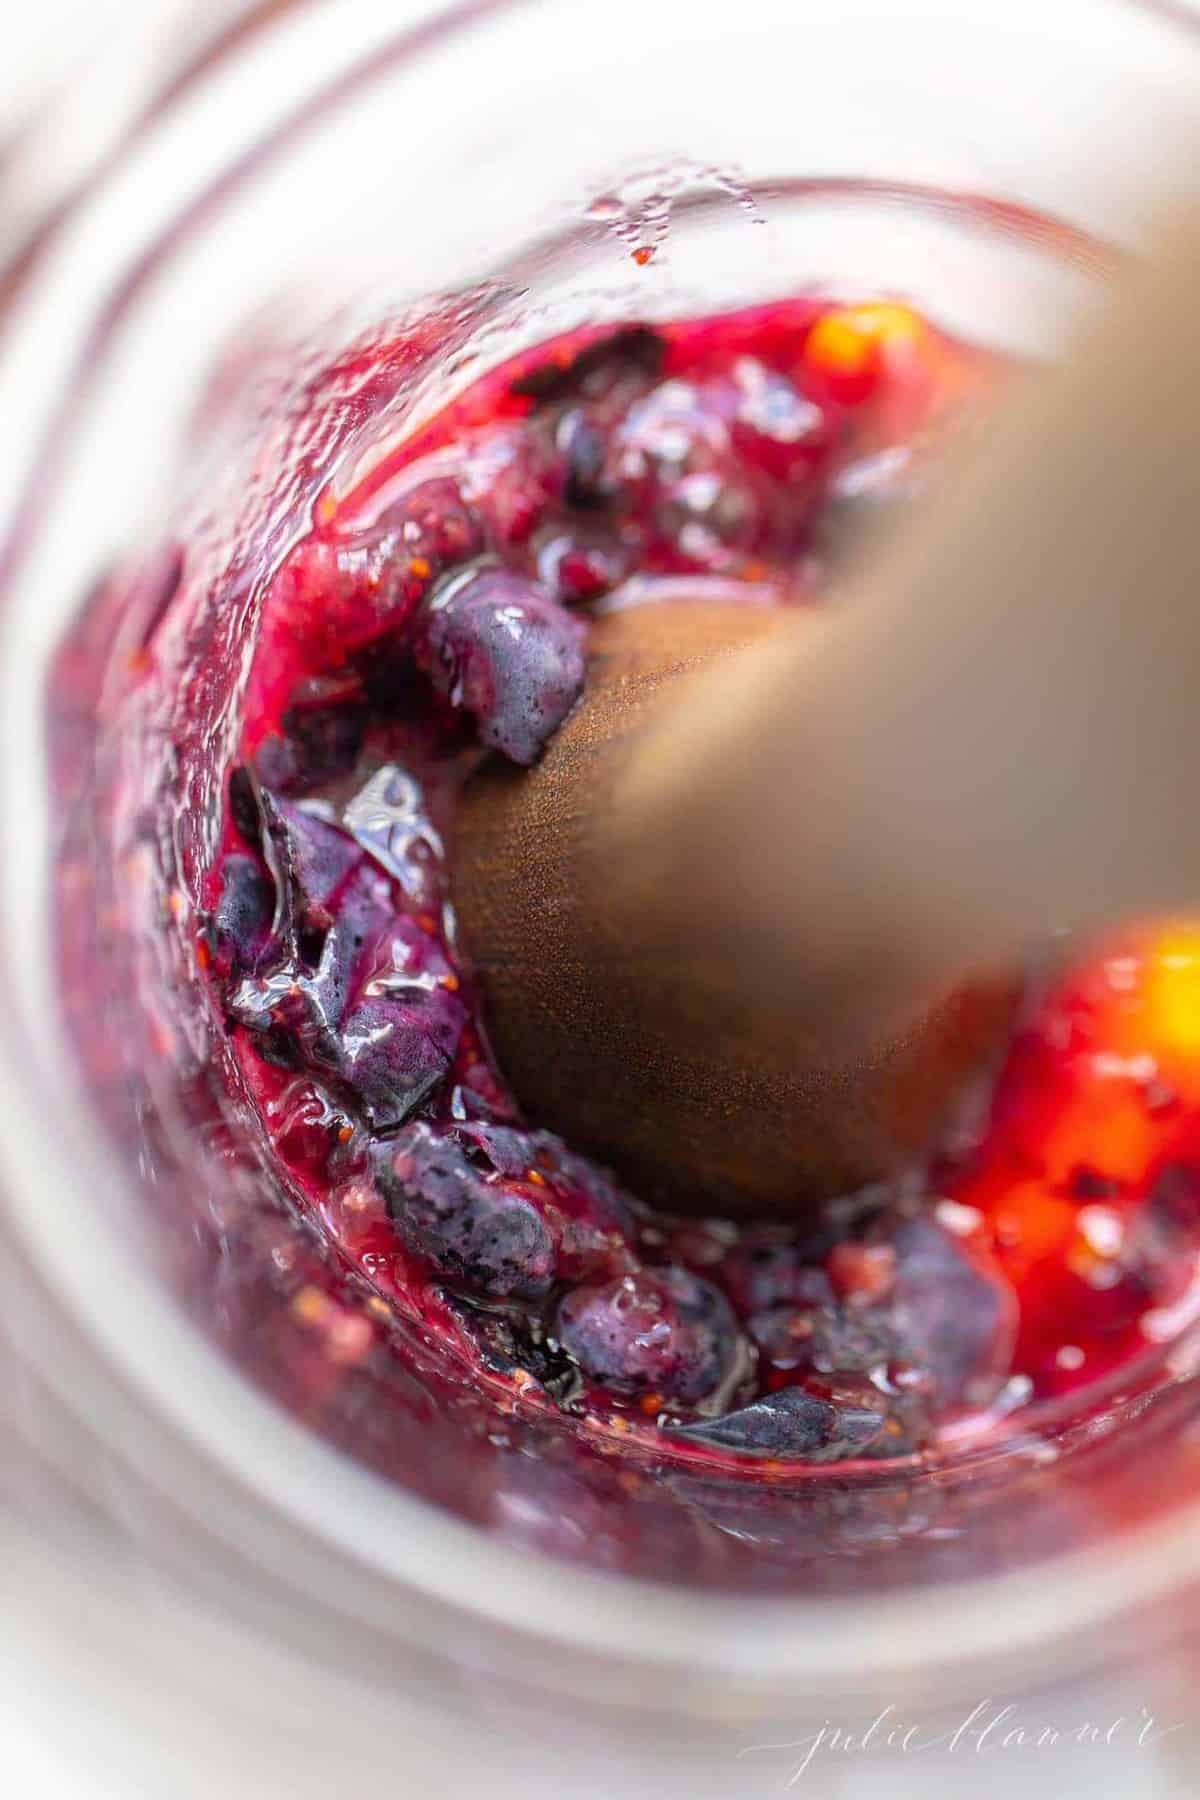 Looking into a pitcher of smashed fruit for a whiskey smash recipe, muddler at work.